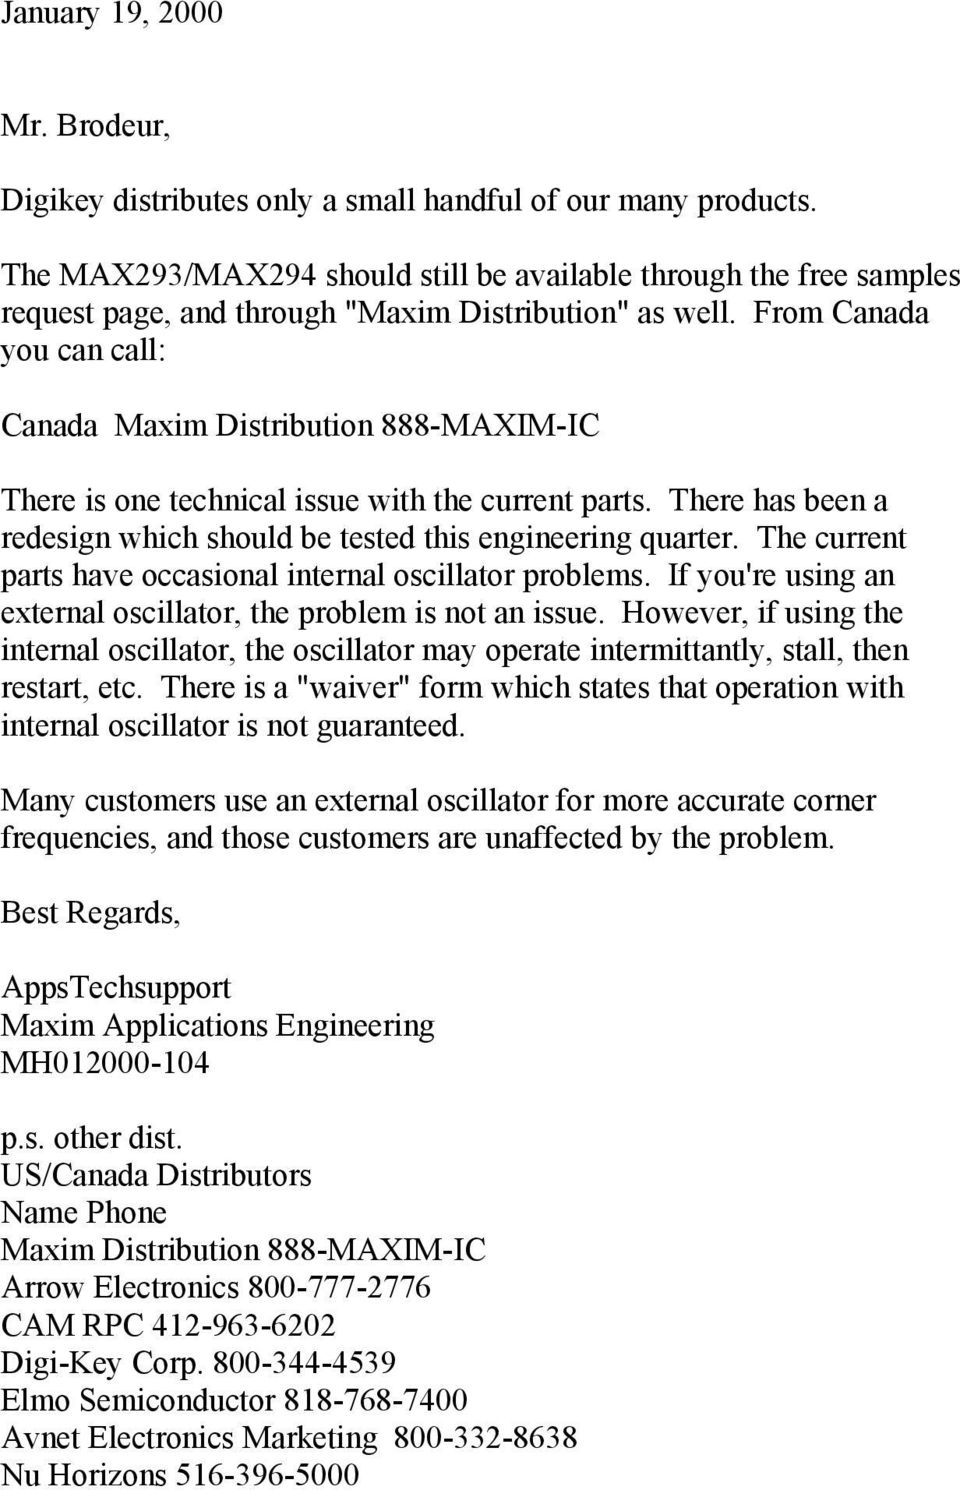 From Canada you can call: Canada Maxim Distribution 888-MAXIM-IC There is one technical issue with the current parts. There has been a redesign which should be tested this engineering quarter.